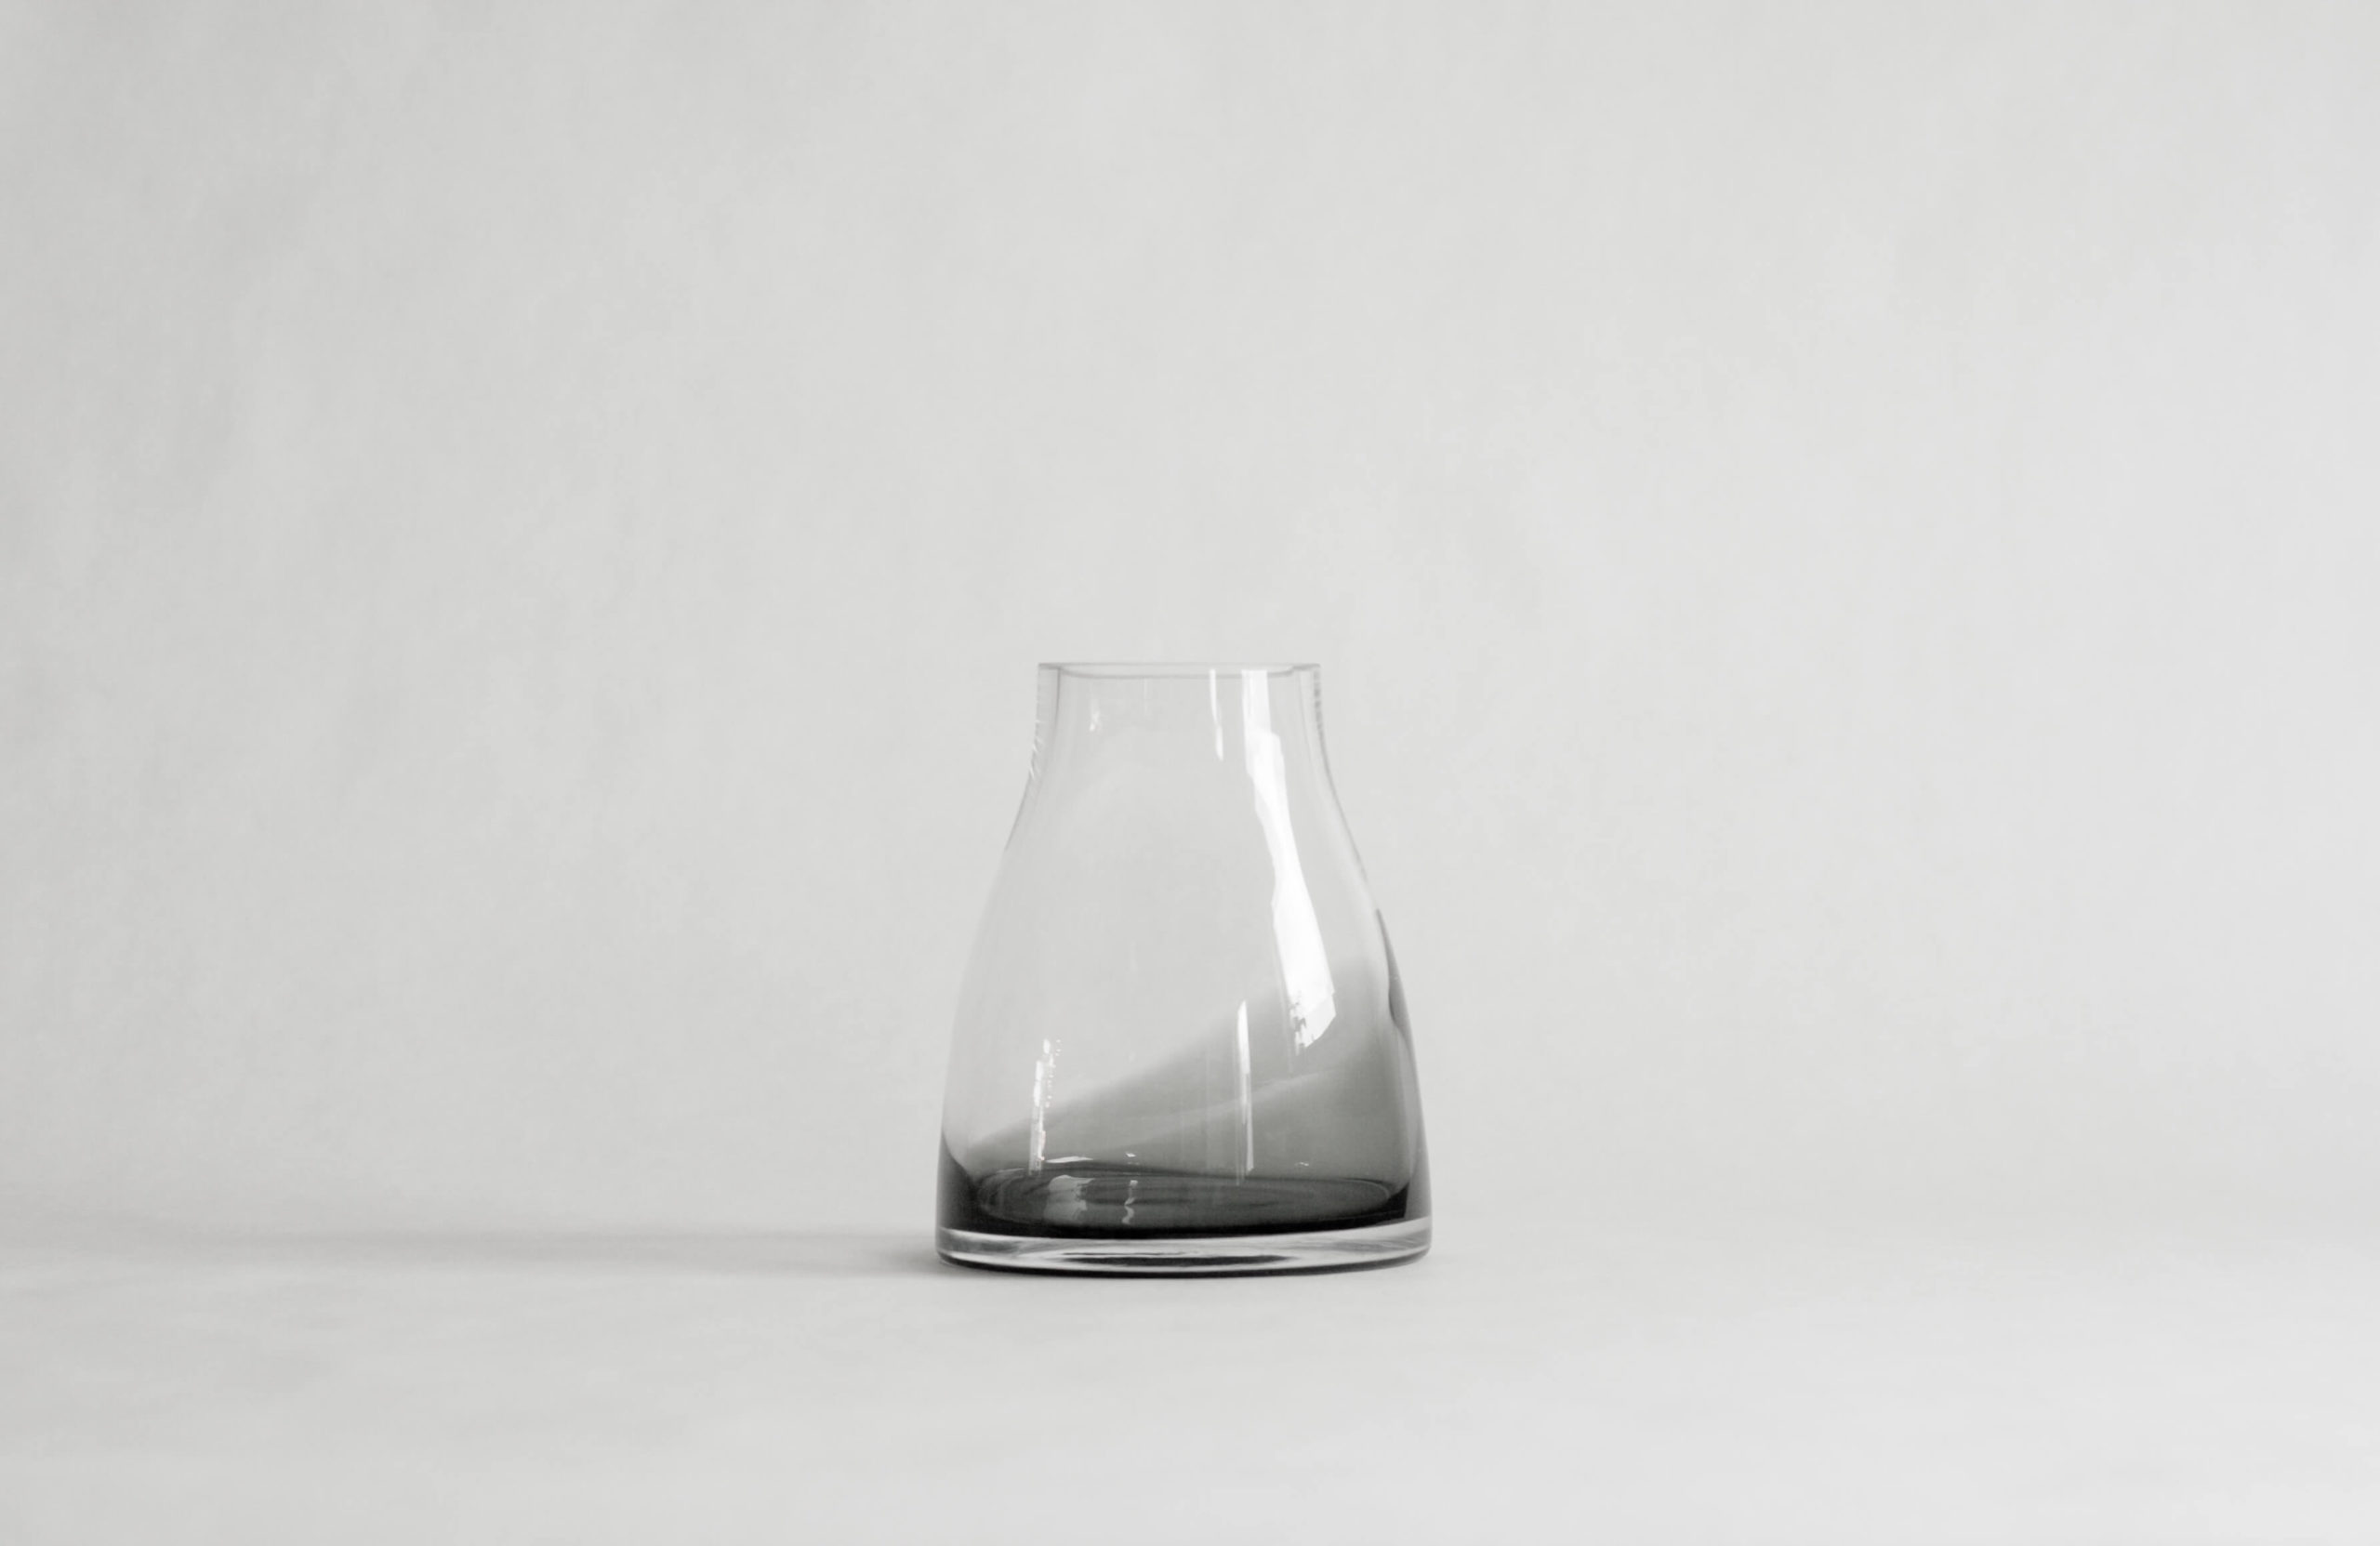 Ro_Flowervase no 2_A table story (2 of 5)